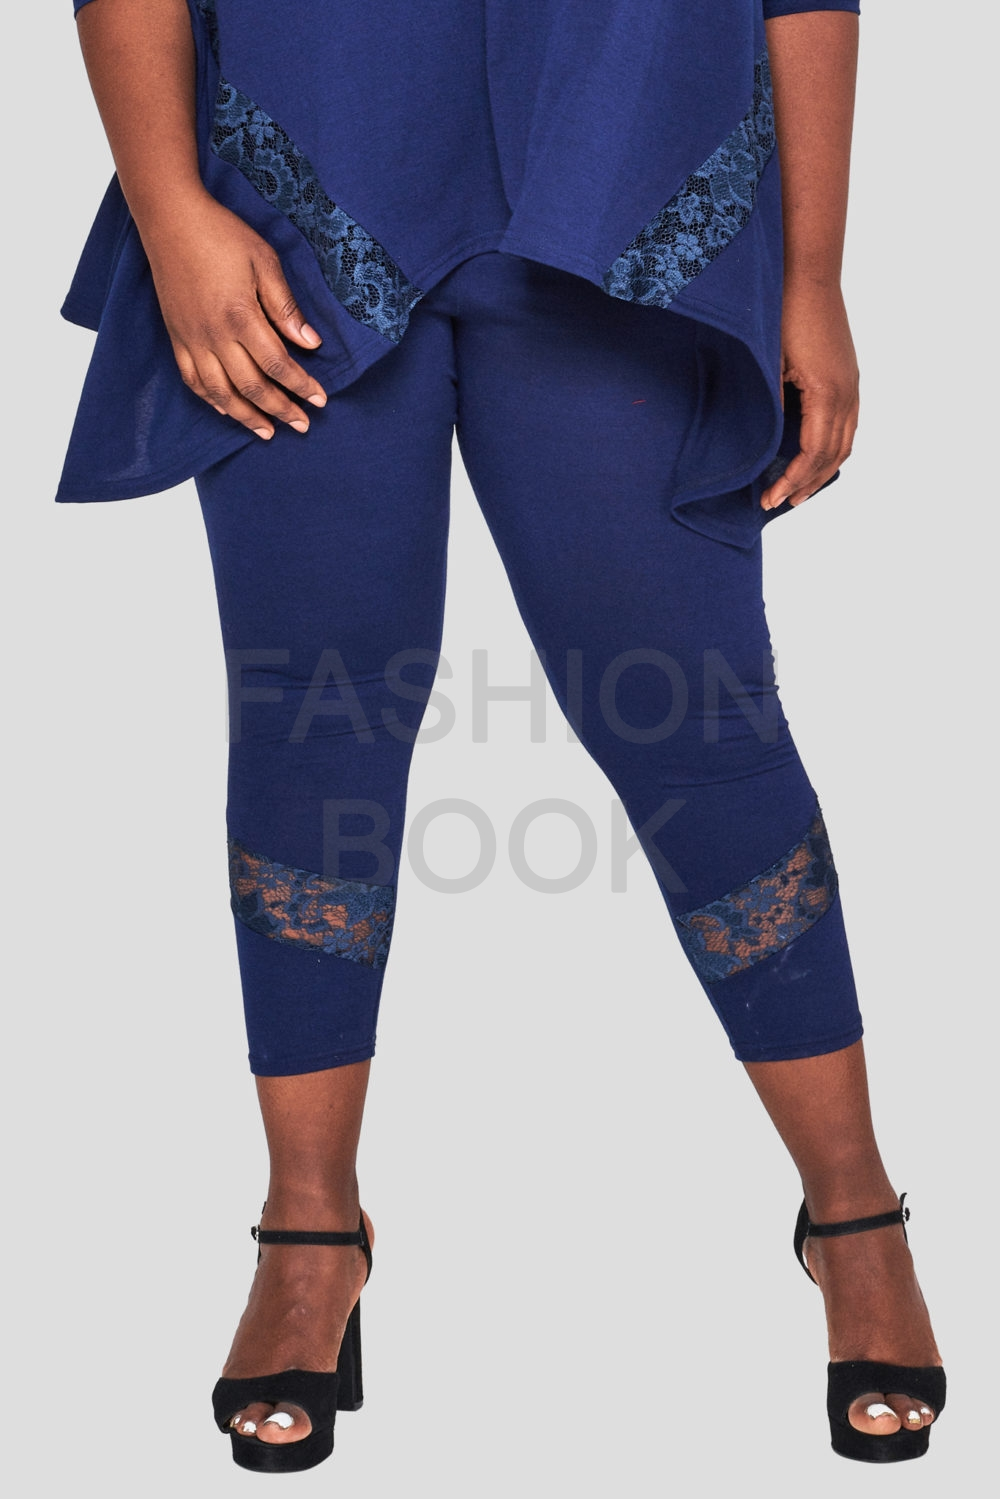 Fashionbook Wholesale Plus Size Lace Legging Navy